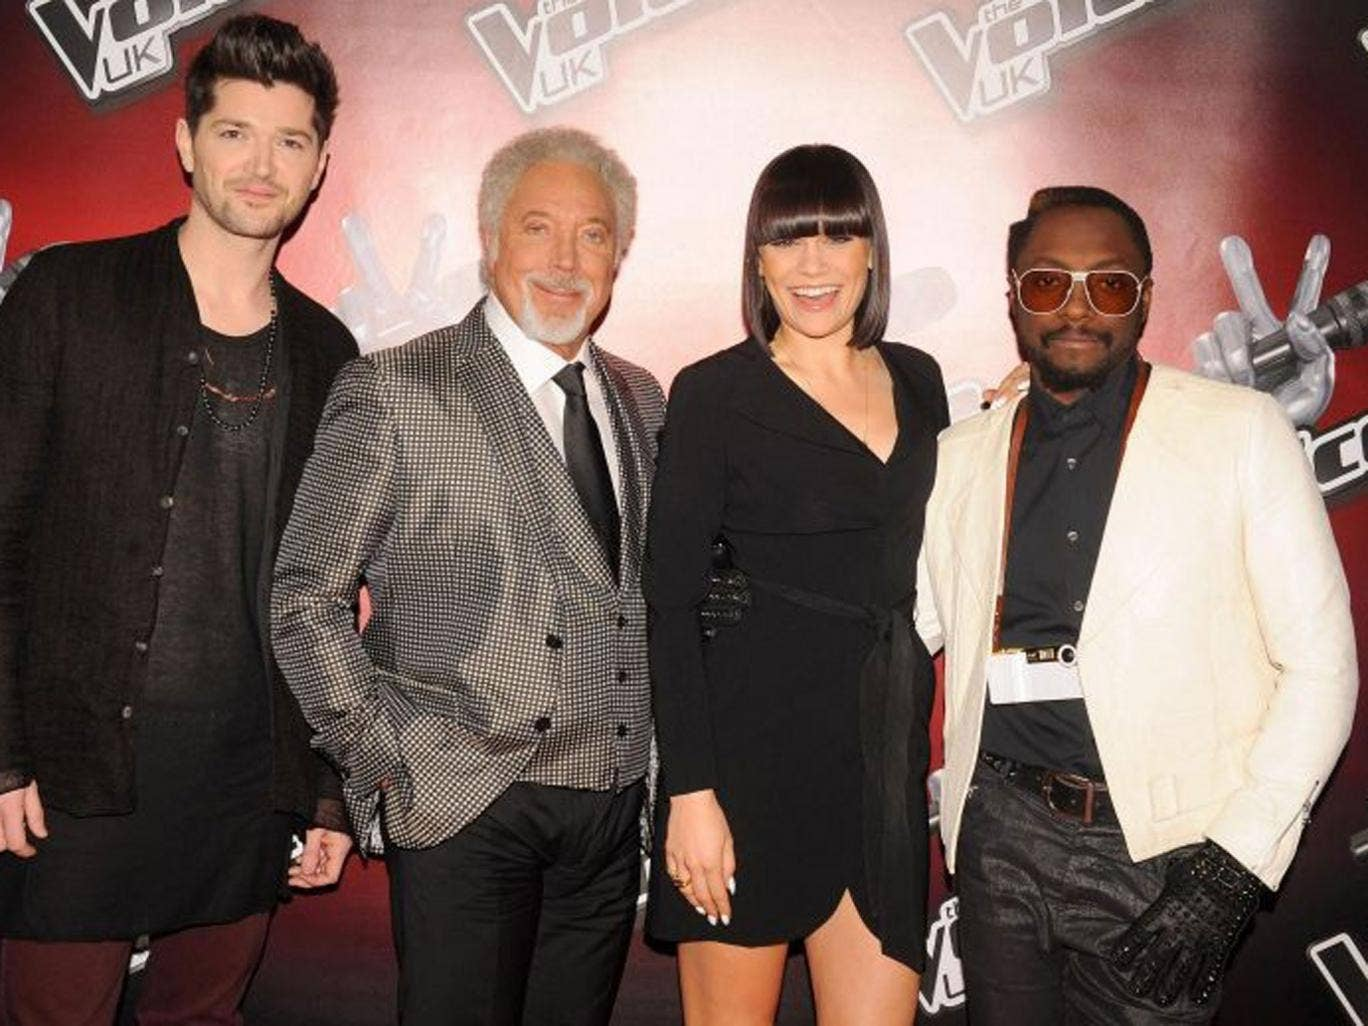 The Voice scored its lowest viewing figures for the current series last night